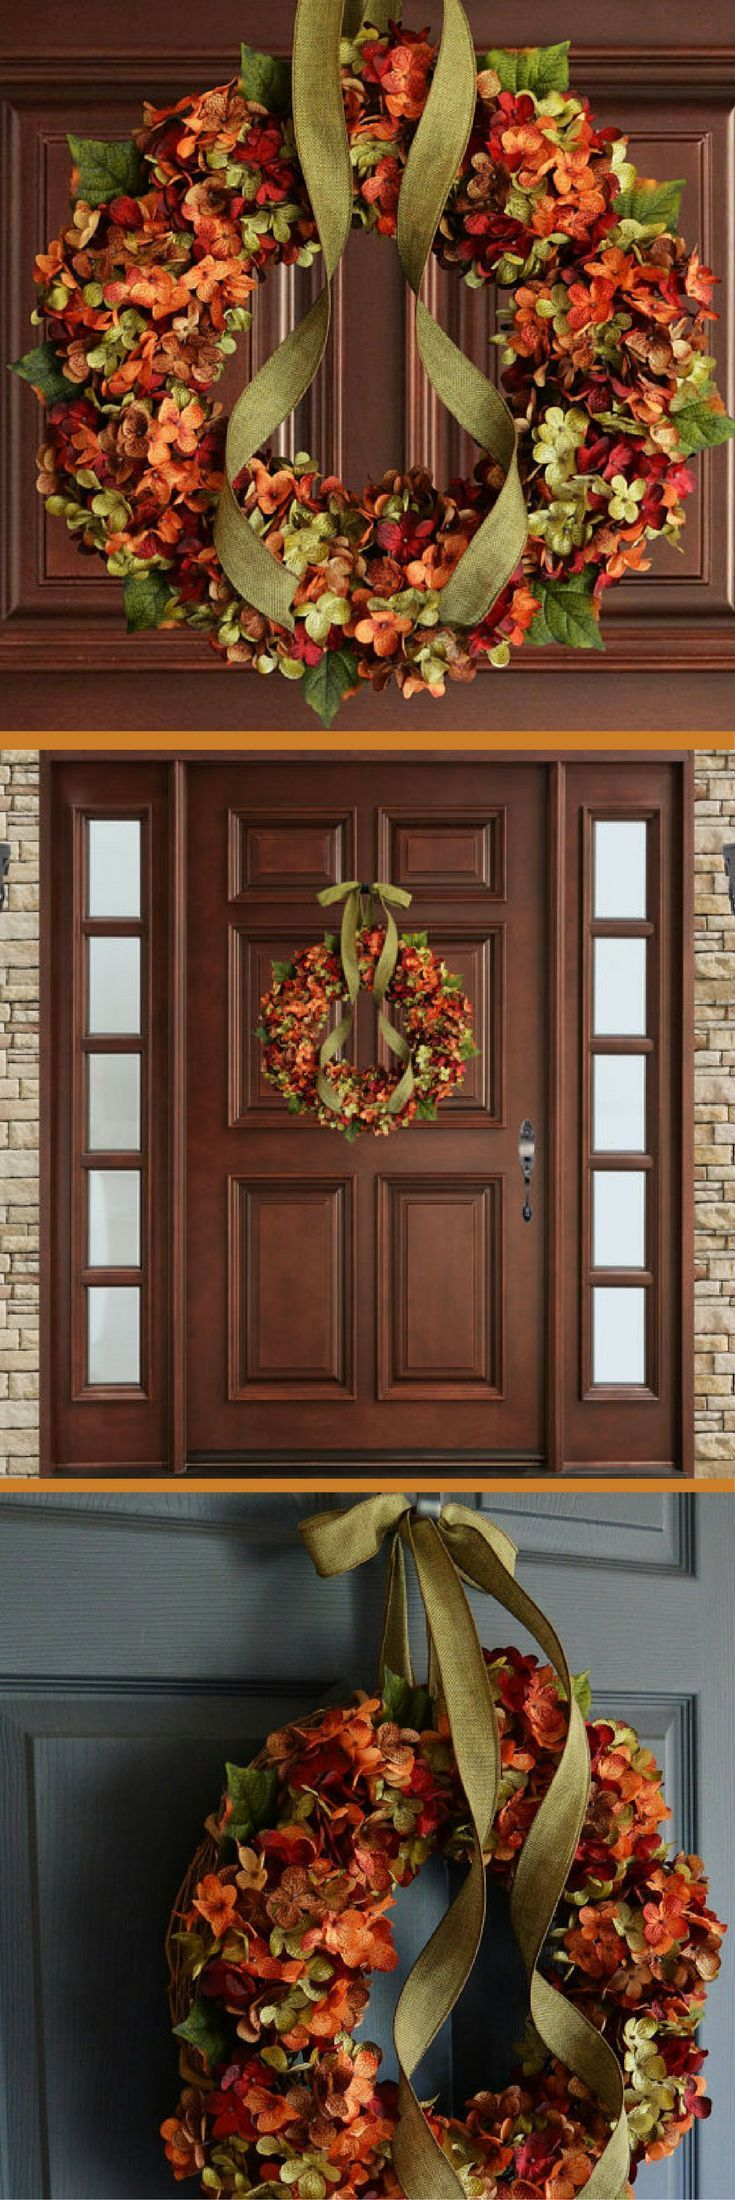 Fall Blended Hydrangea Wreath | Fall Decor | Autumn Wreaths | Front Door Wreaths...